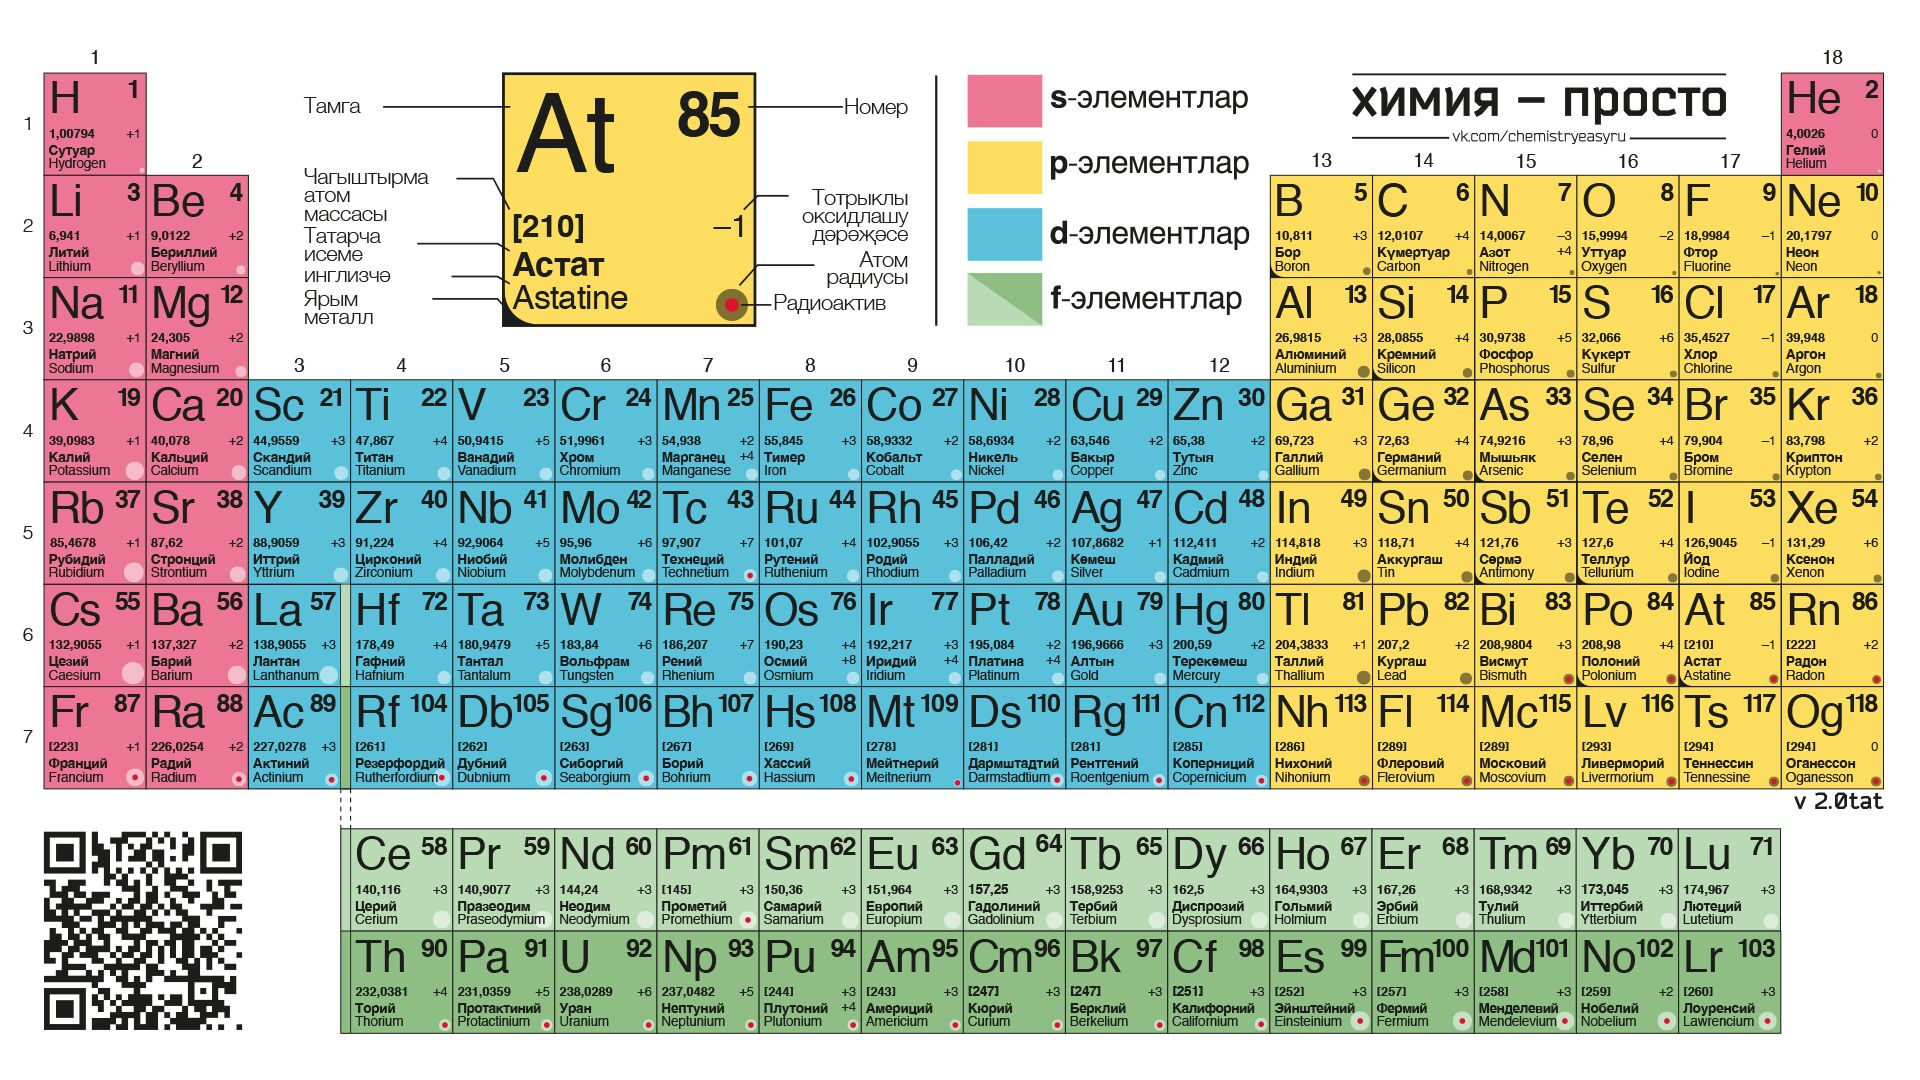 Periodic table alphabet images periodic table images azeri periodic table of the chemical elements tatar periodic table of the elements in cyrillic alphabet gamestrikefo Choice Image